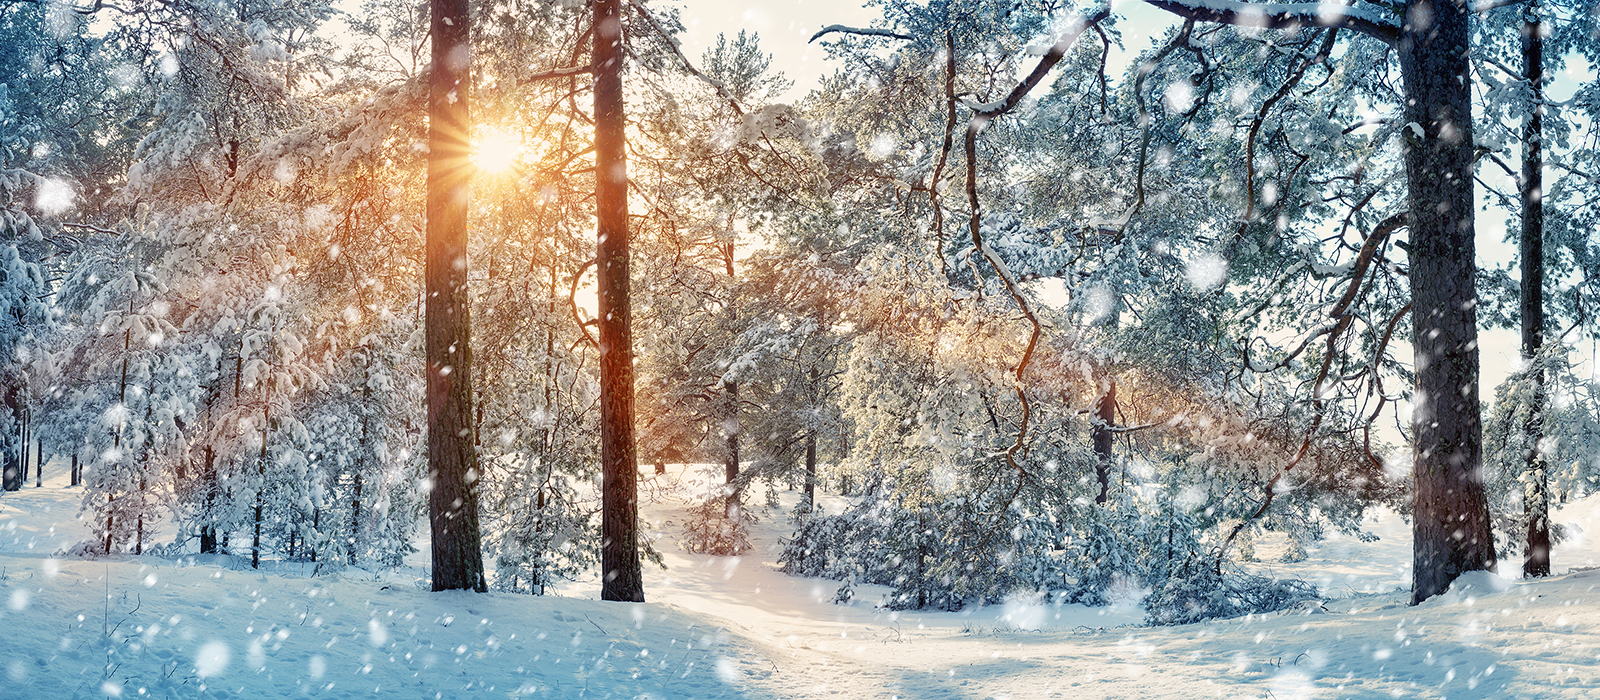 Sunlight shining through snow covered trees